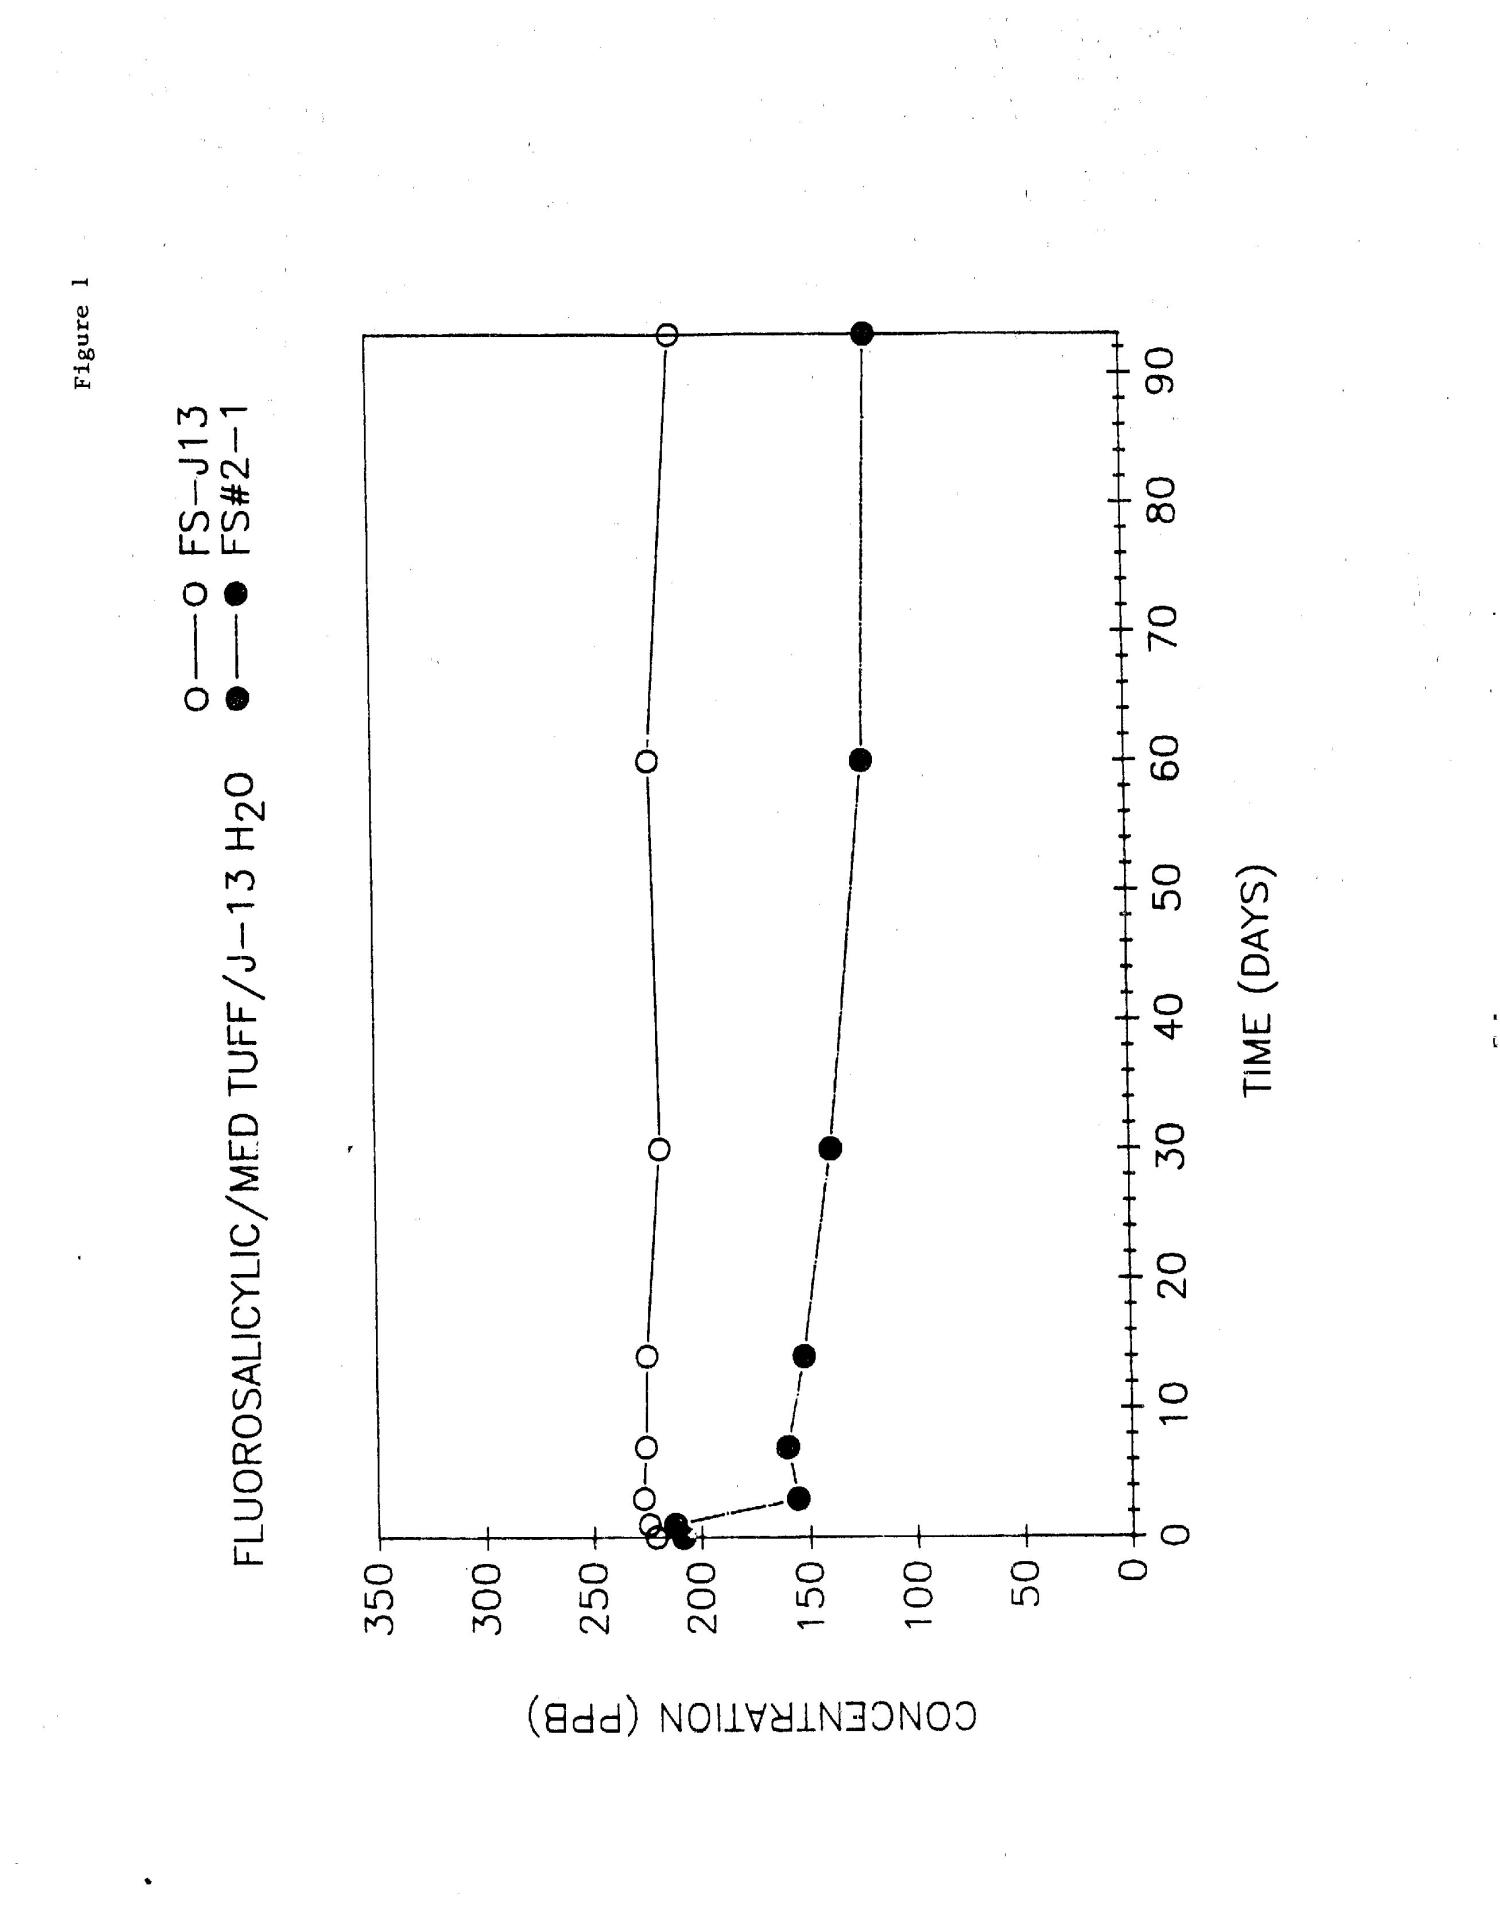 Identification and characterization of conservative organic tracers for use as hydrologic tracers for the Yucca Mountain Site Characterization Study; Progress report, June 1--December 31, 1990                                                                                                      [Sequence #]: 13 of 125